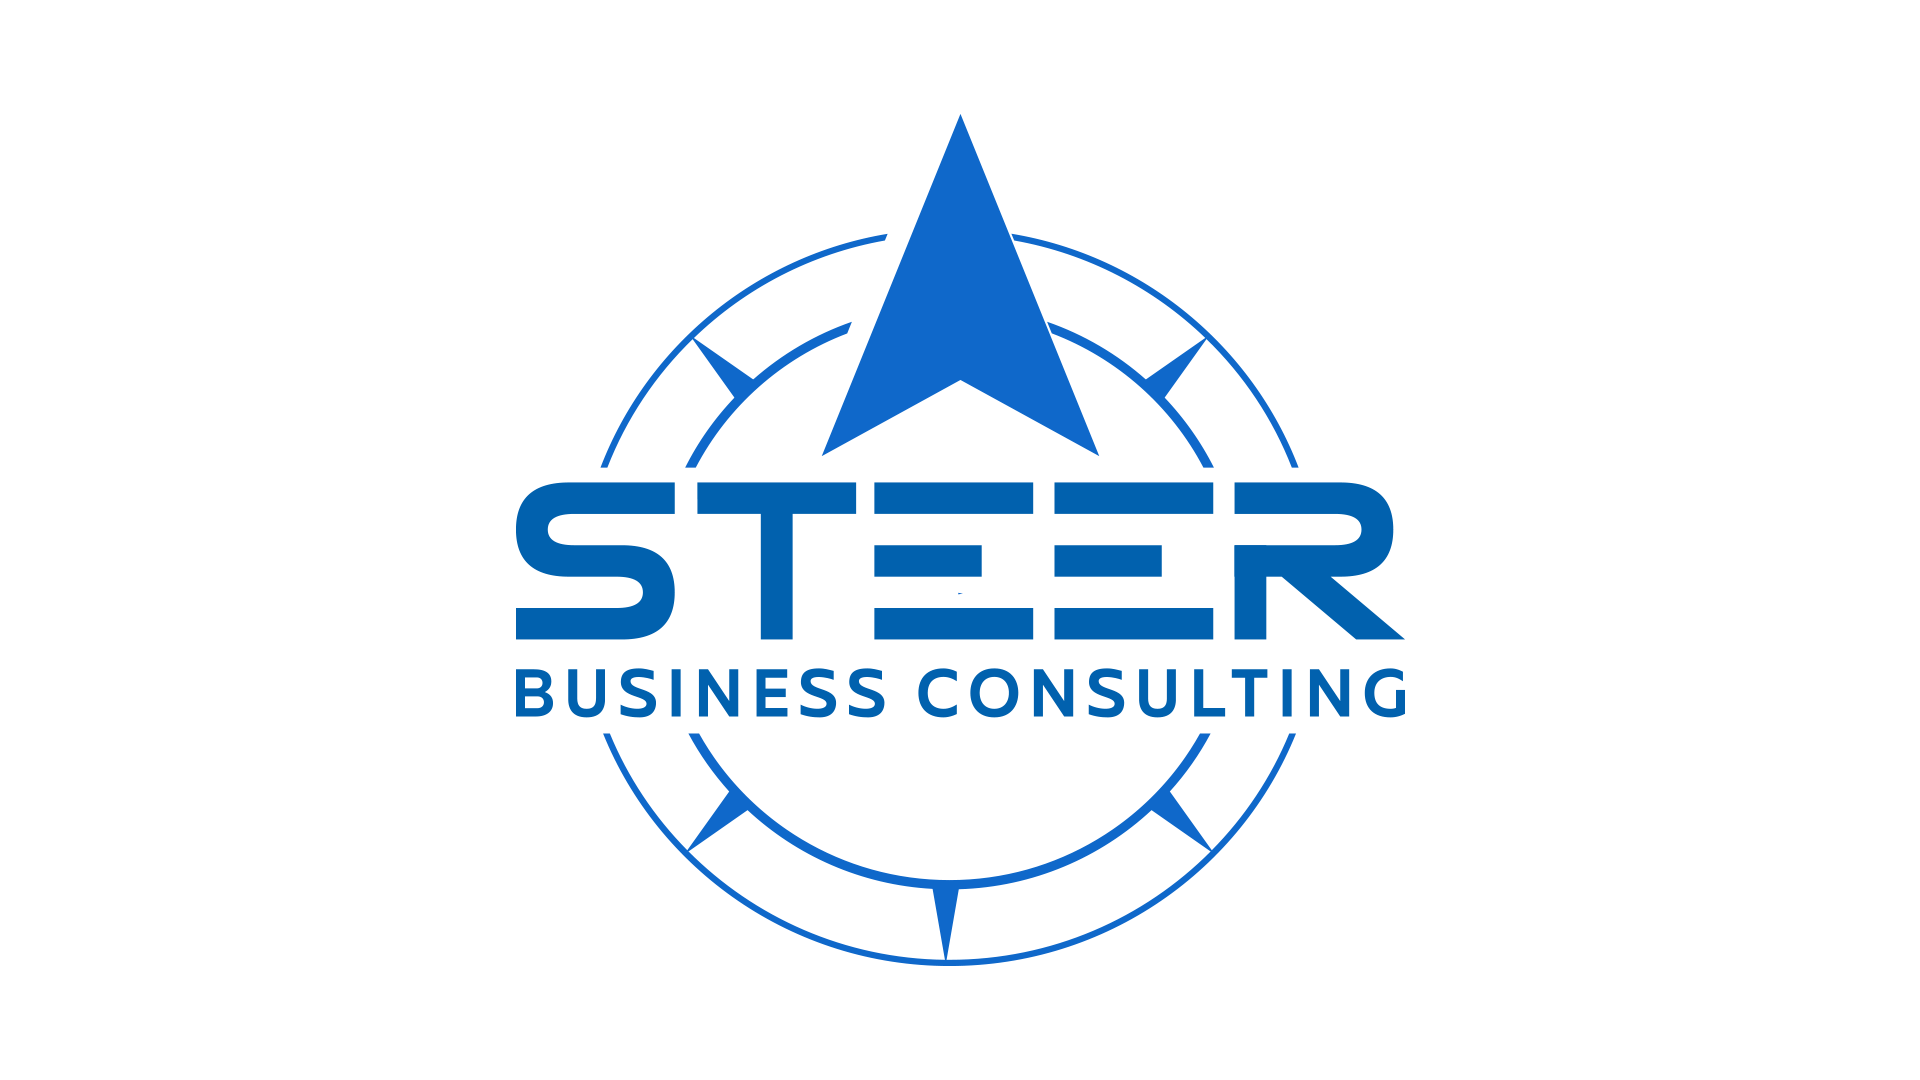 steer-business-consulting-logo